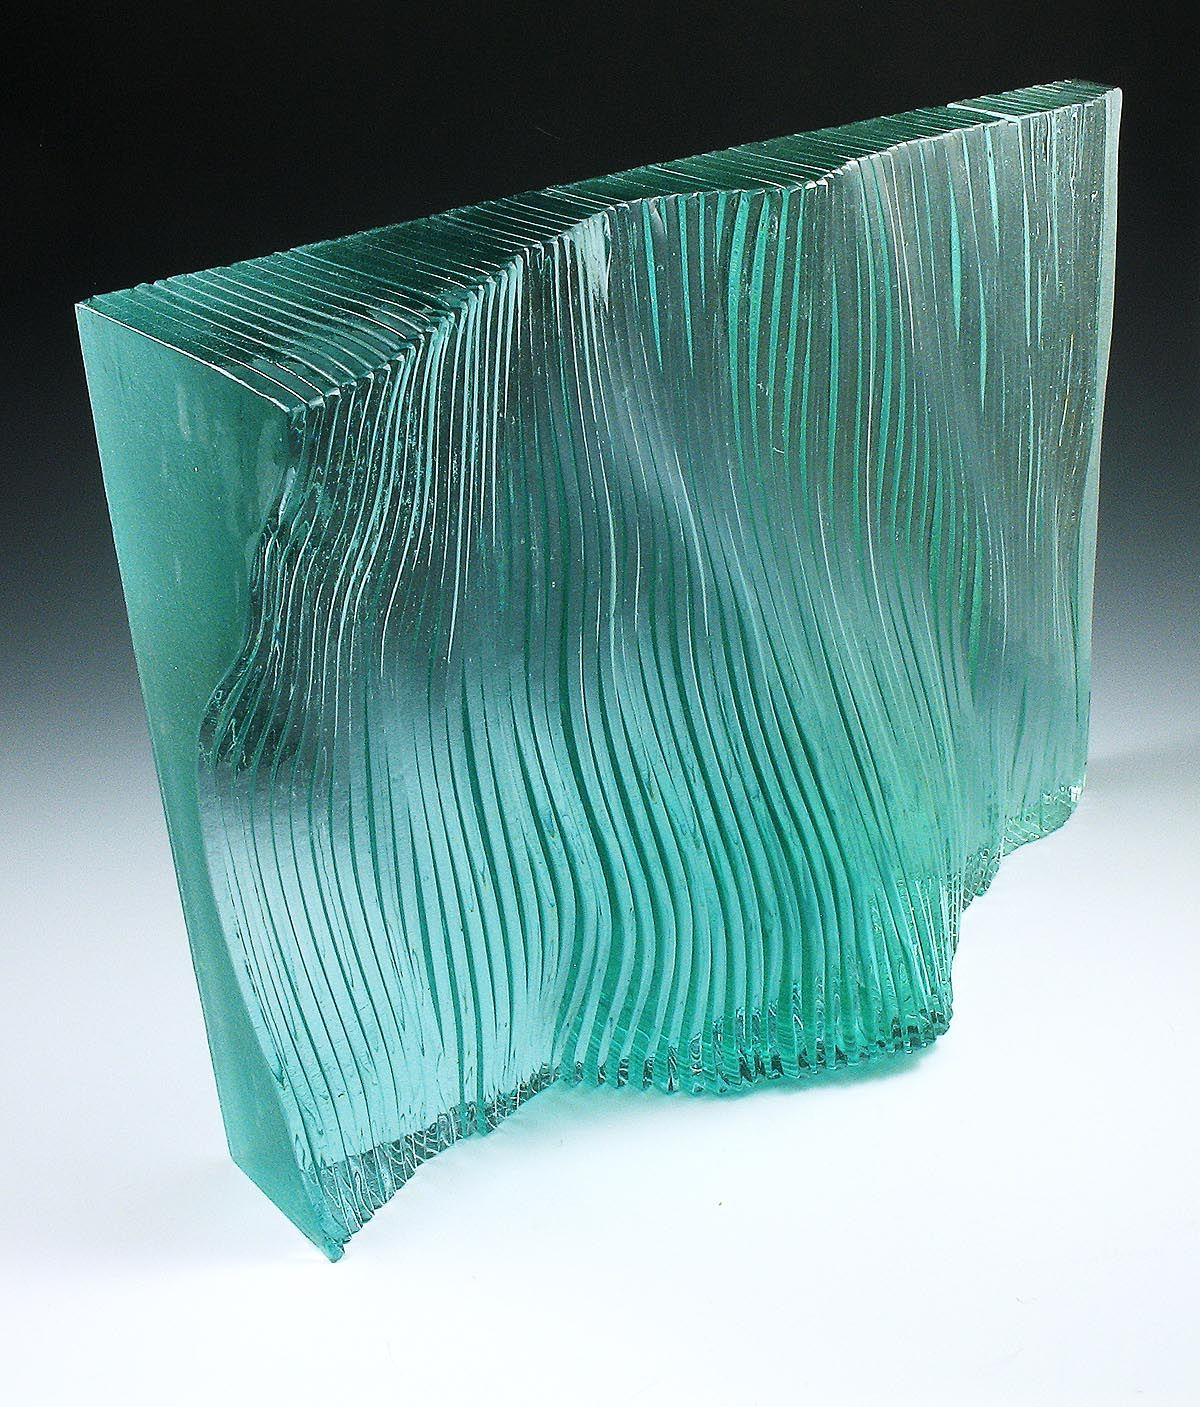 Clear Acrylic Glass Sheets Are A Versatile Material That Can Be Used Any Number Of Ways For A Variety Inspire Me Home Decor Sculpture En Verre L Art Du Vitrail